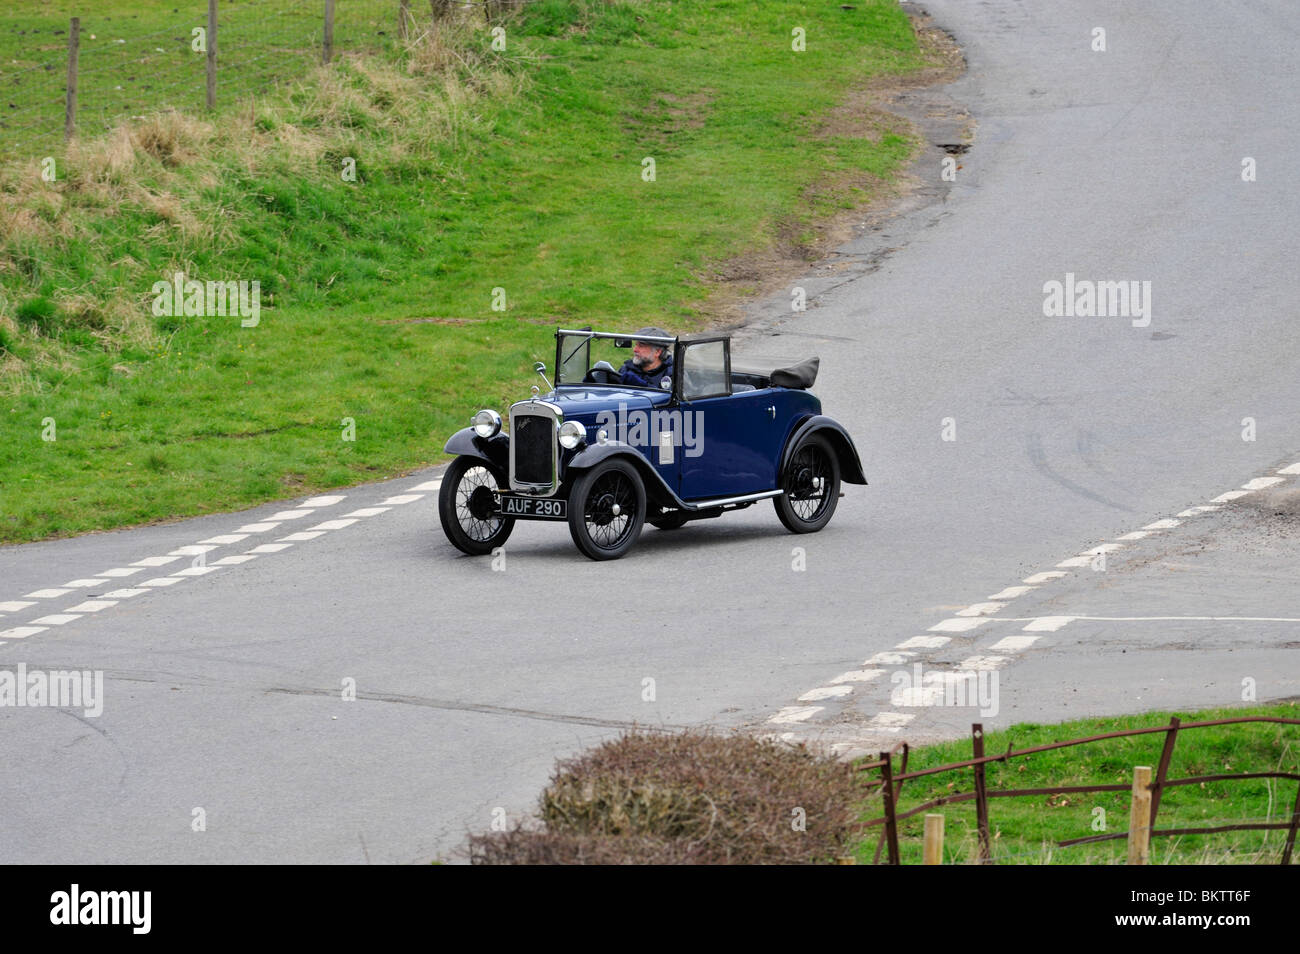 1934 AUSTIN SEVEN OPAL TWO SEATER. VINTAGE CARS 1934 ON THE OPEN ROAD. - Stock Image